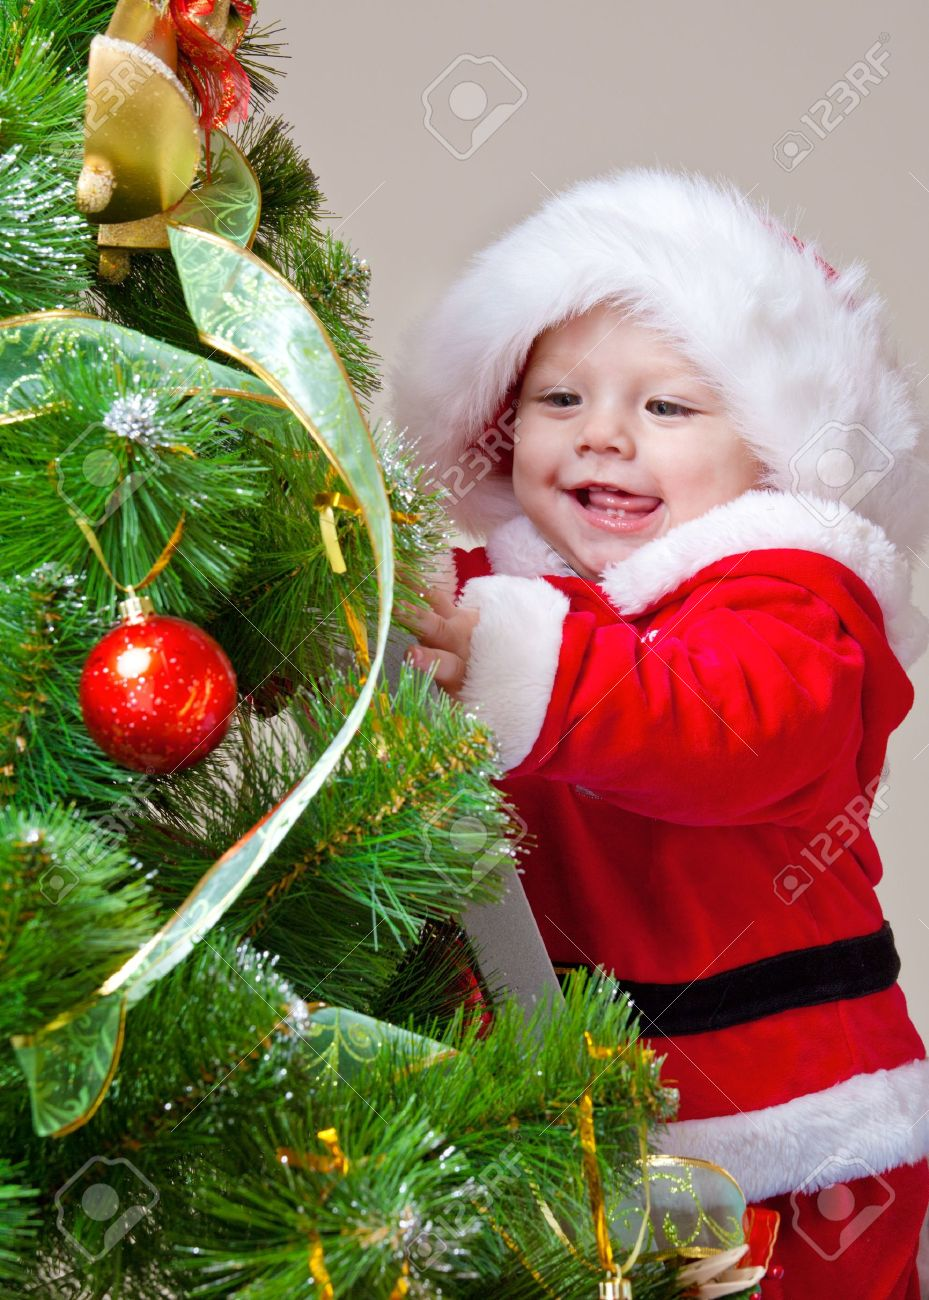 Baby decorating Christmas tree, over gray - 8168634